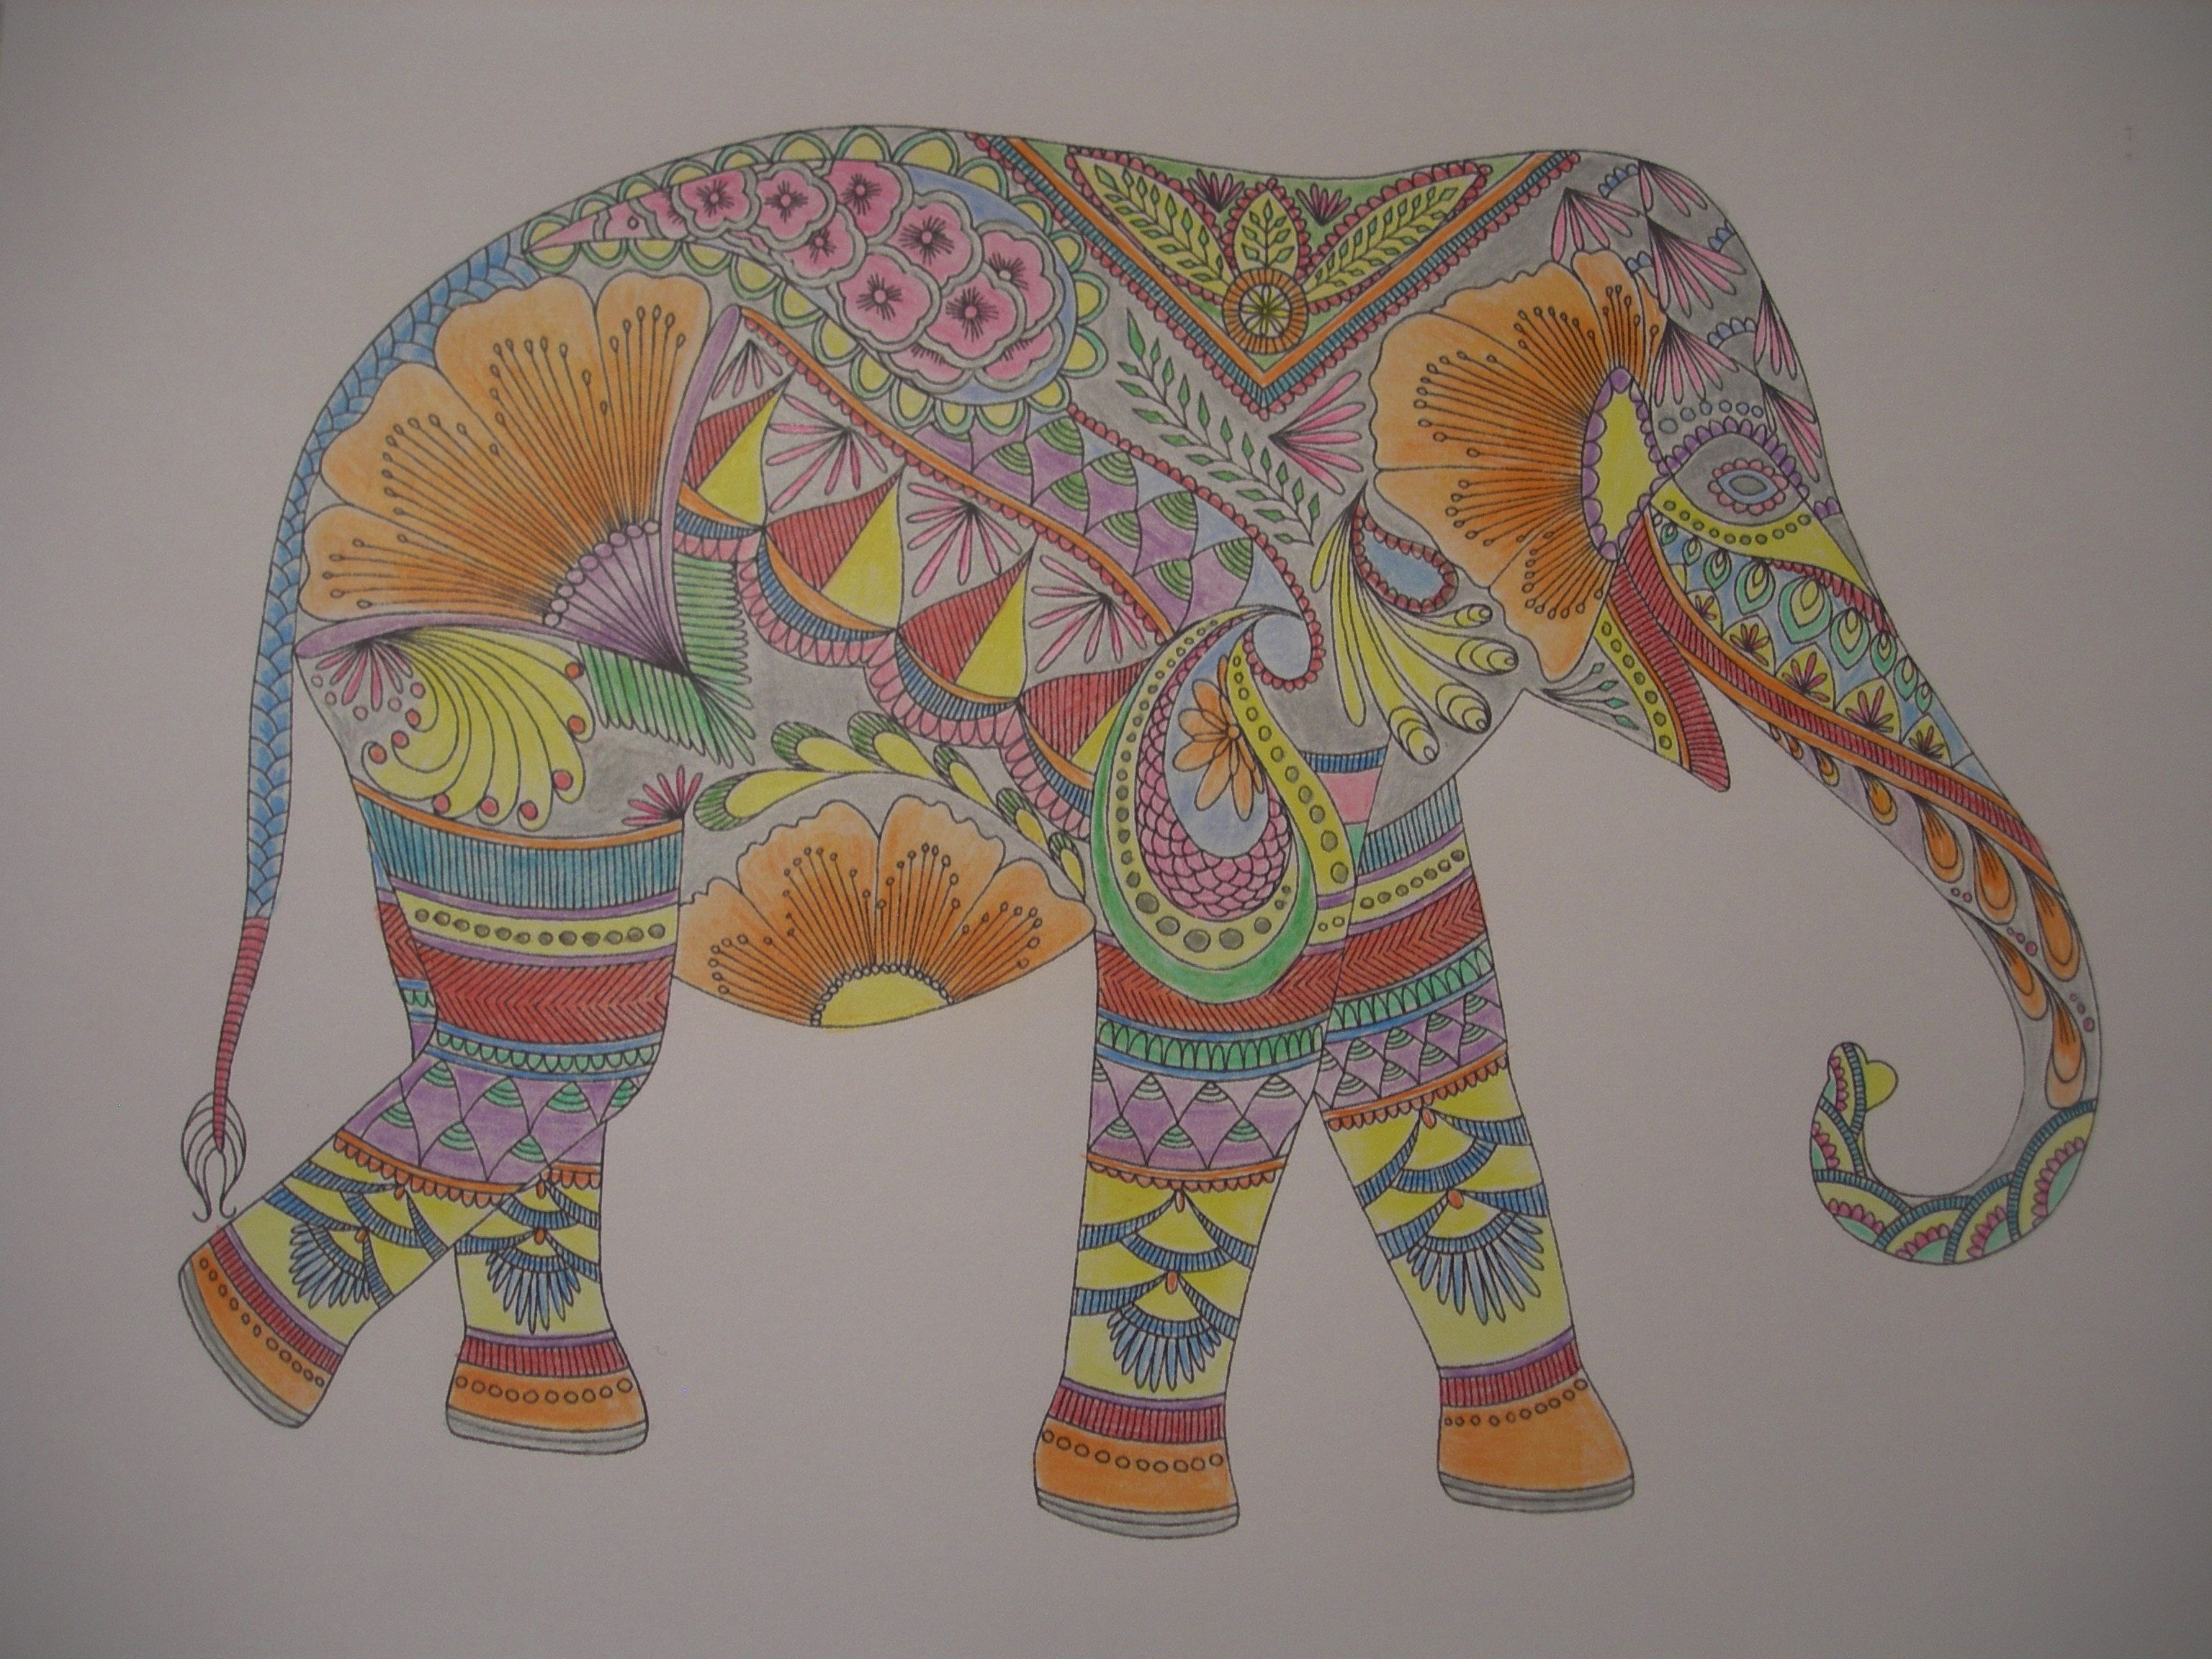 Coloring book animal kingdom - Design By Millie Marotta Millie Marotta Batsford Books Colouring Inadult Coloringcoloring Booksanimal Kingdomelephant